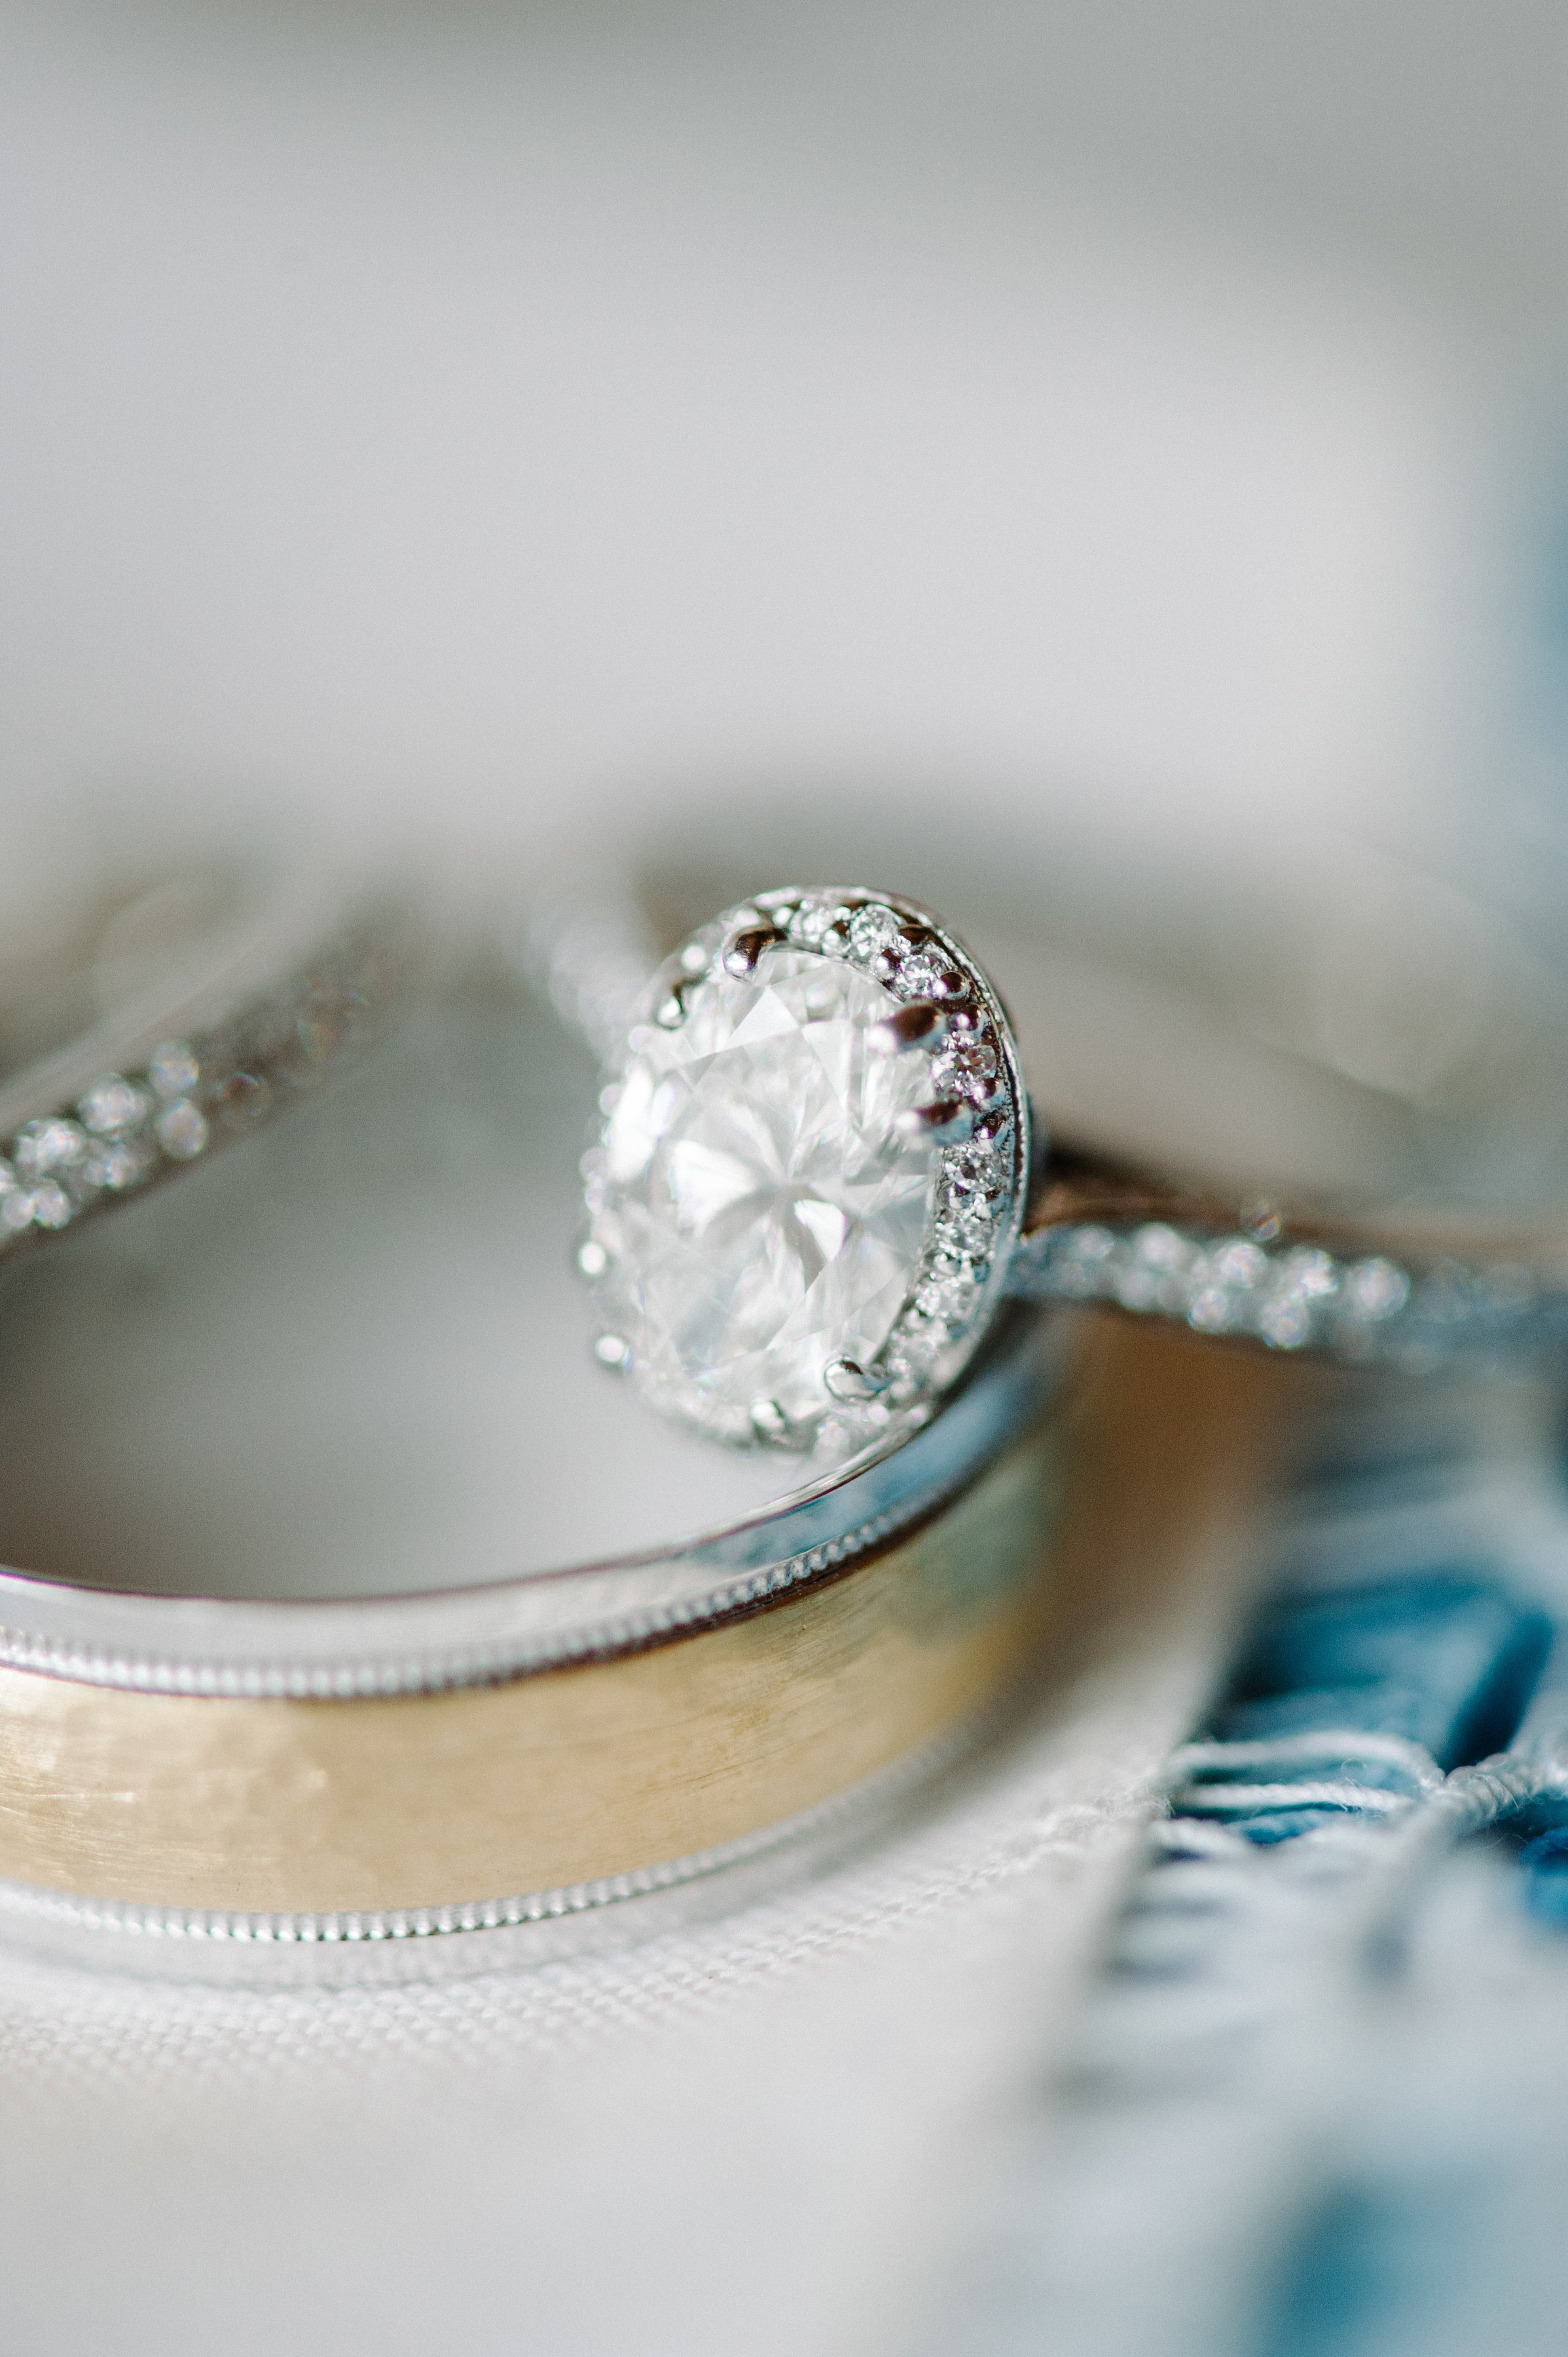 Diamond engagement ring with wedding bands from Beards Jewellers